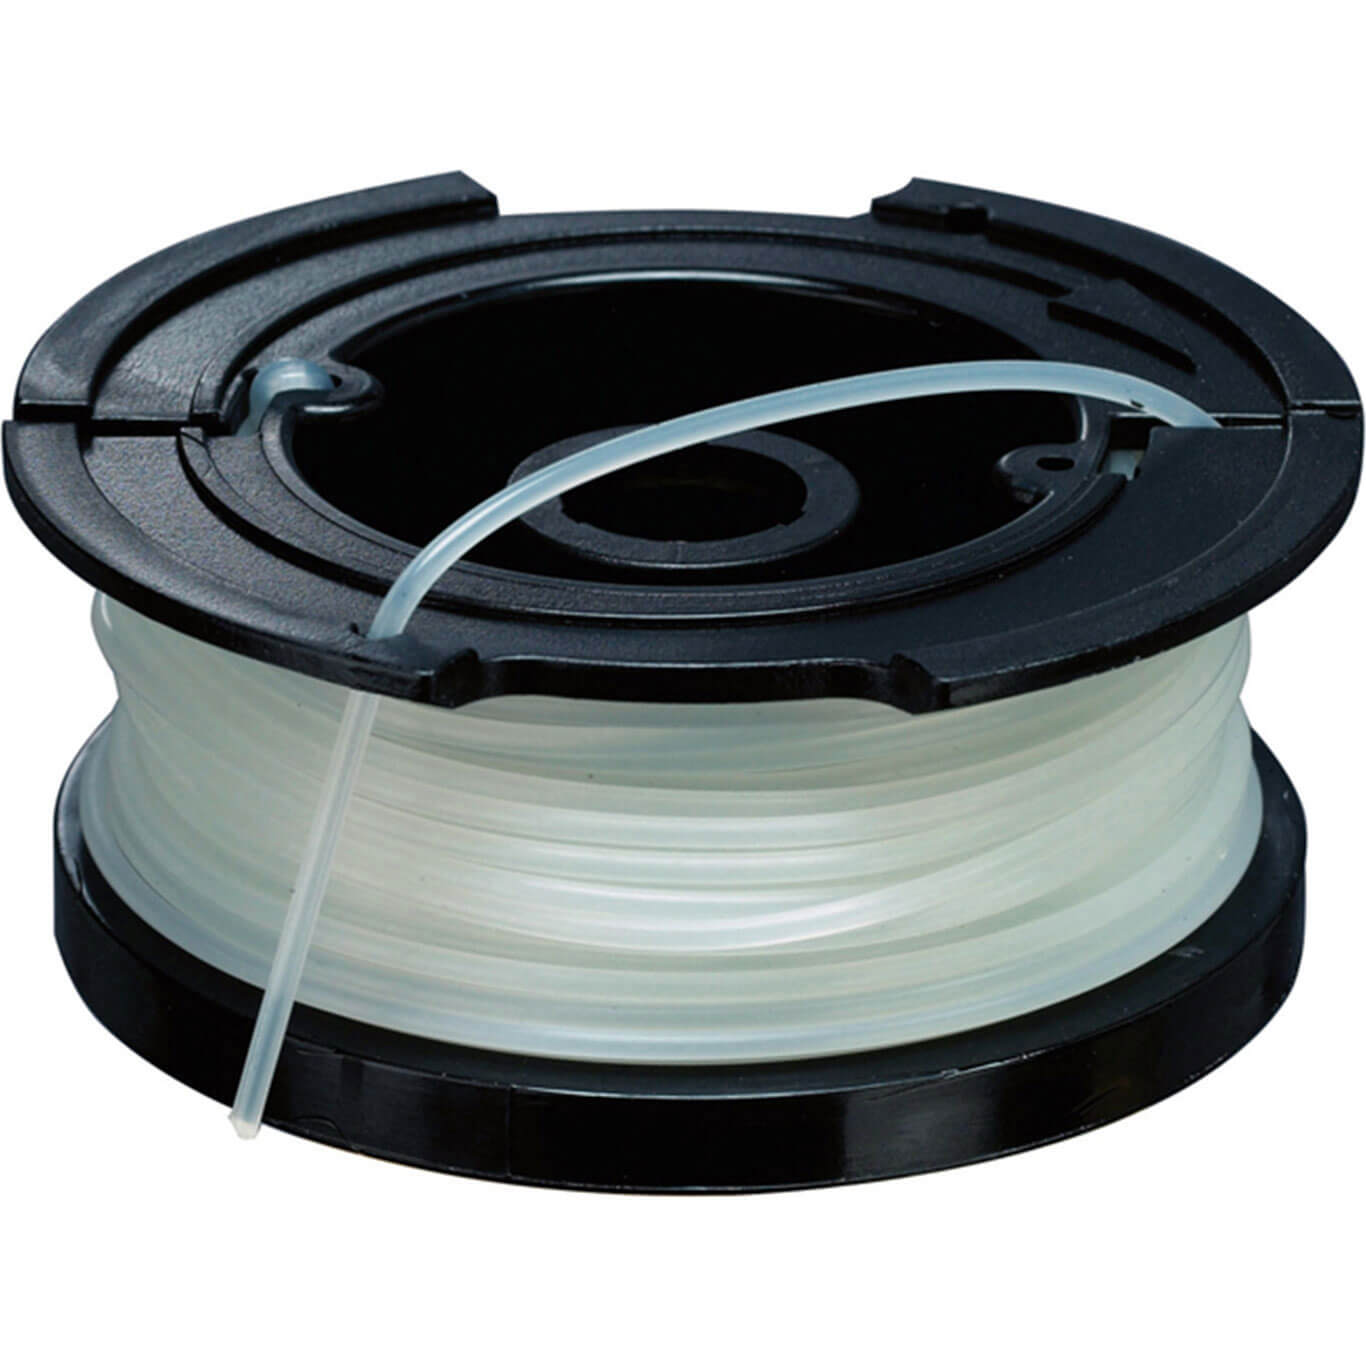 Black & Decker A6481 Replacement Spool & 10 Metre Line for GL280, GL301, GLC13, GL4525, GL5028, GLC2500, GLC3000, GL425,GL430, GL544, GL545, GL555, G